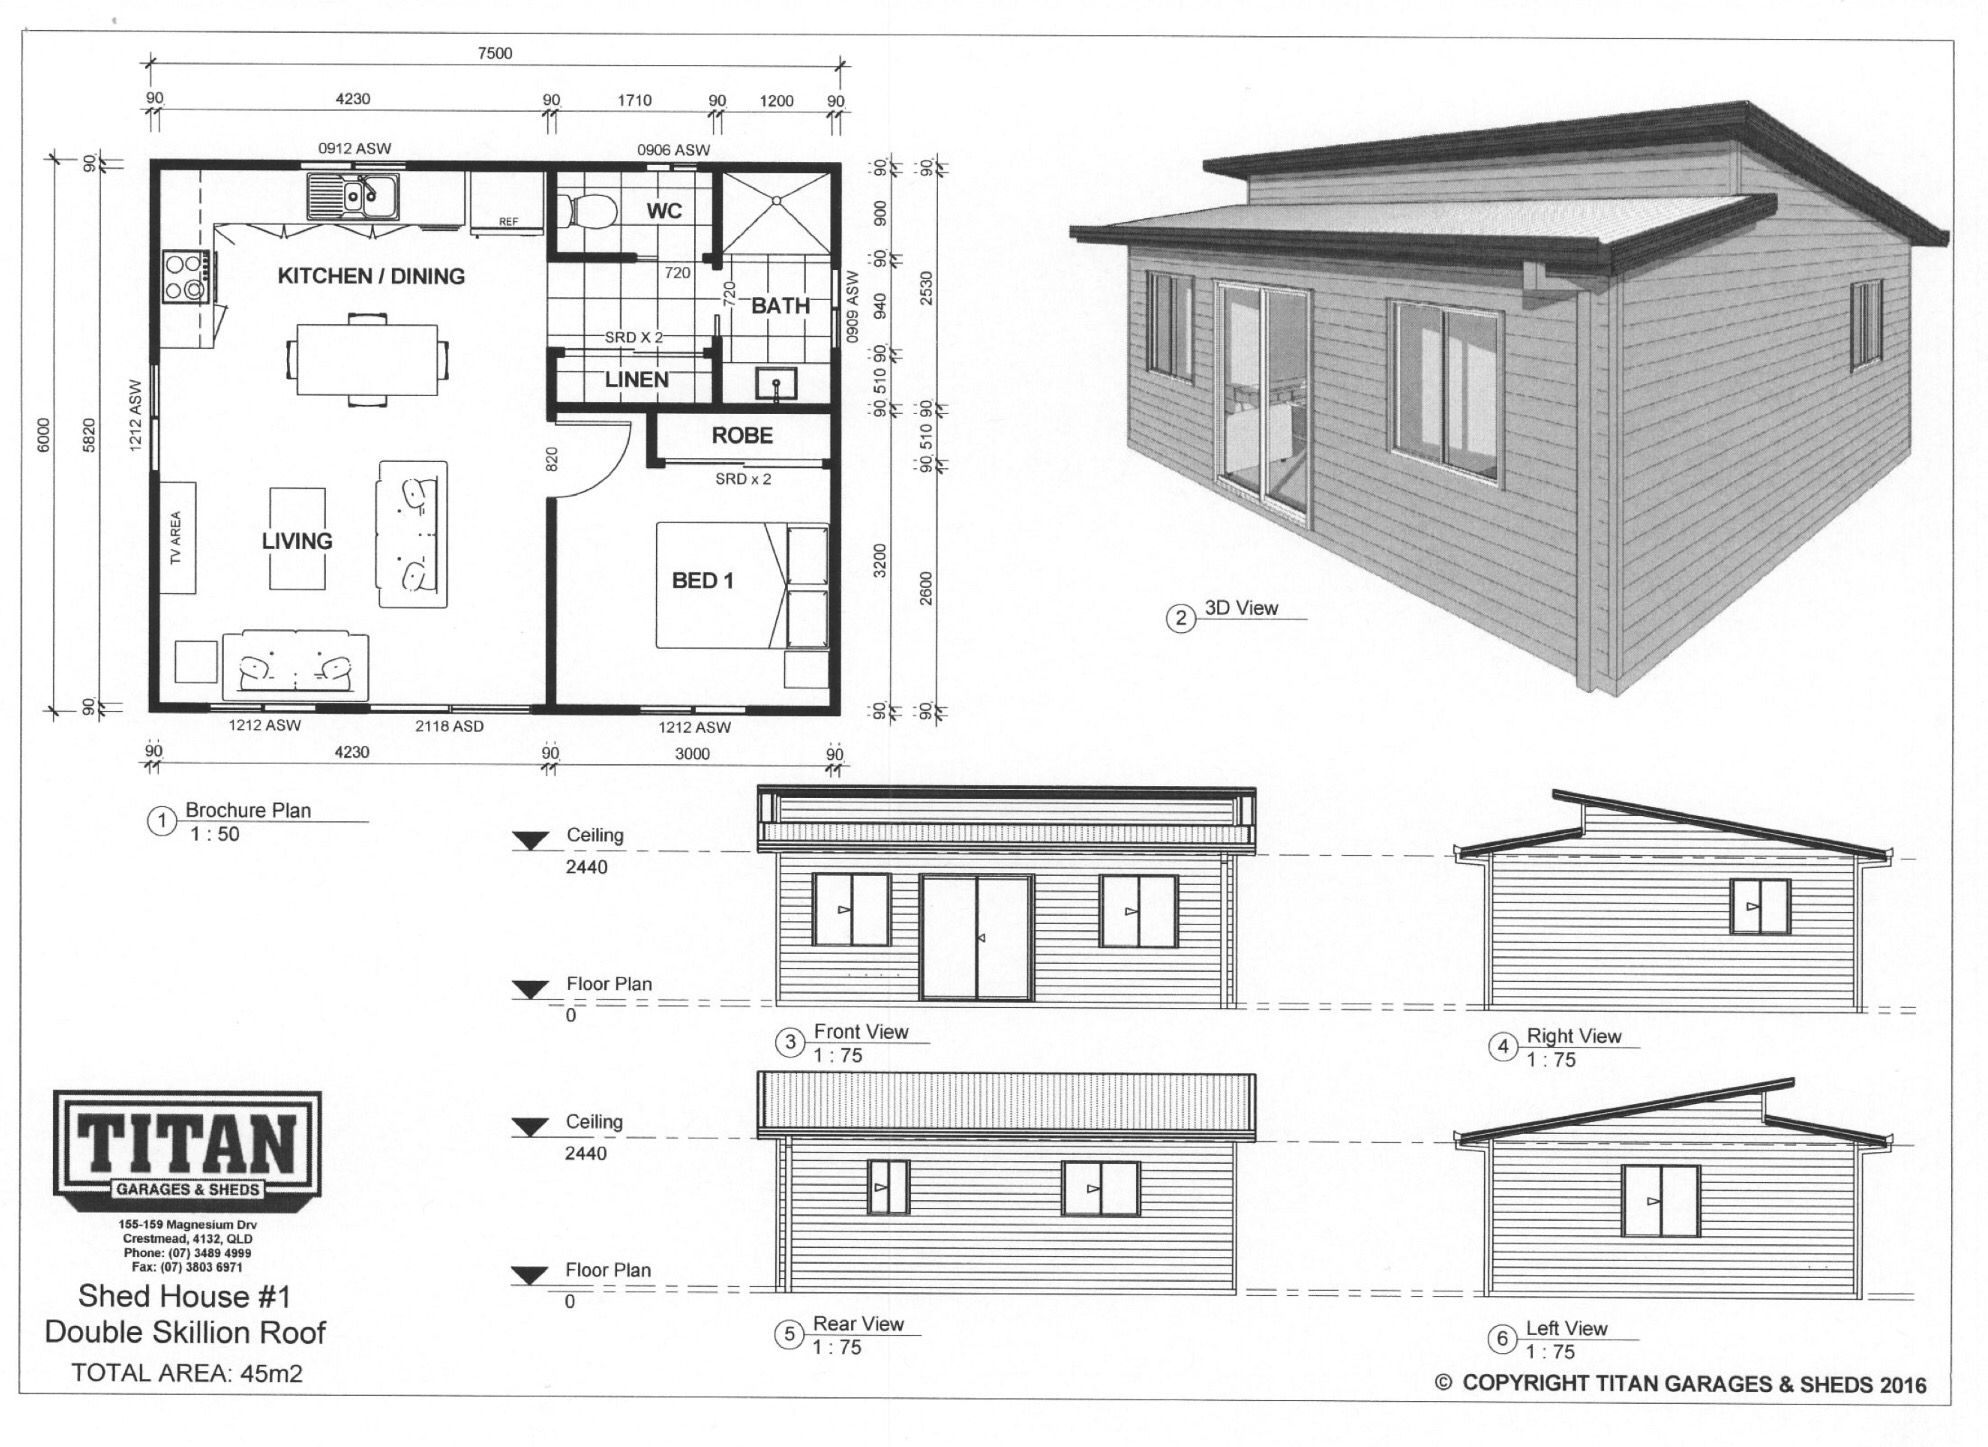 Titan Homes #1 Double Skillion Roof 45m2 www.titangaragesandsheds ...